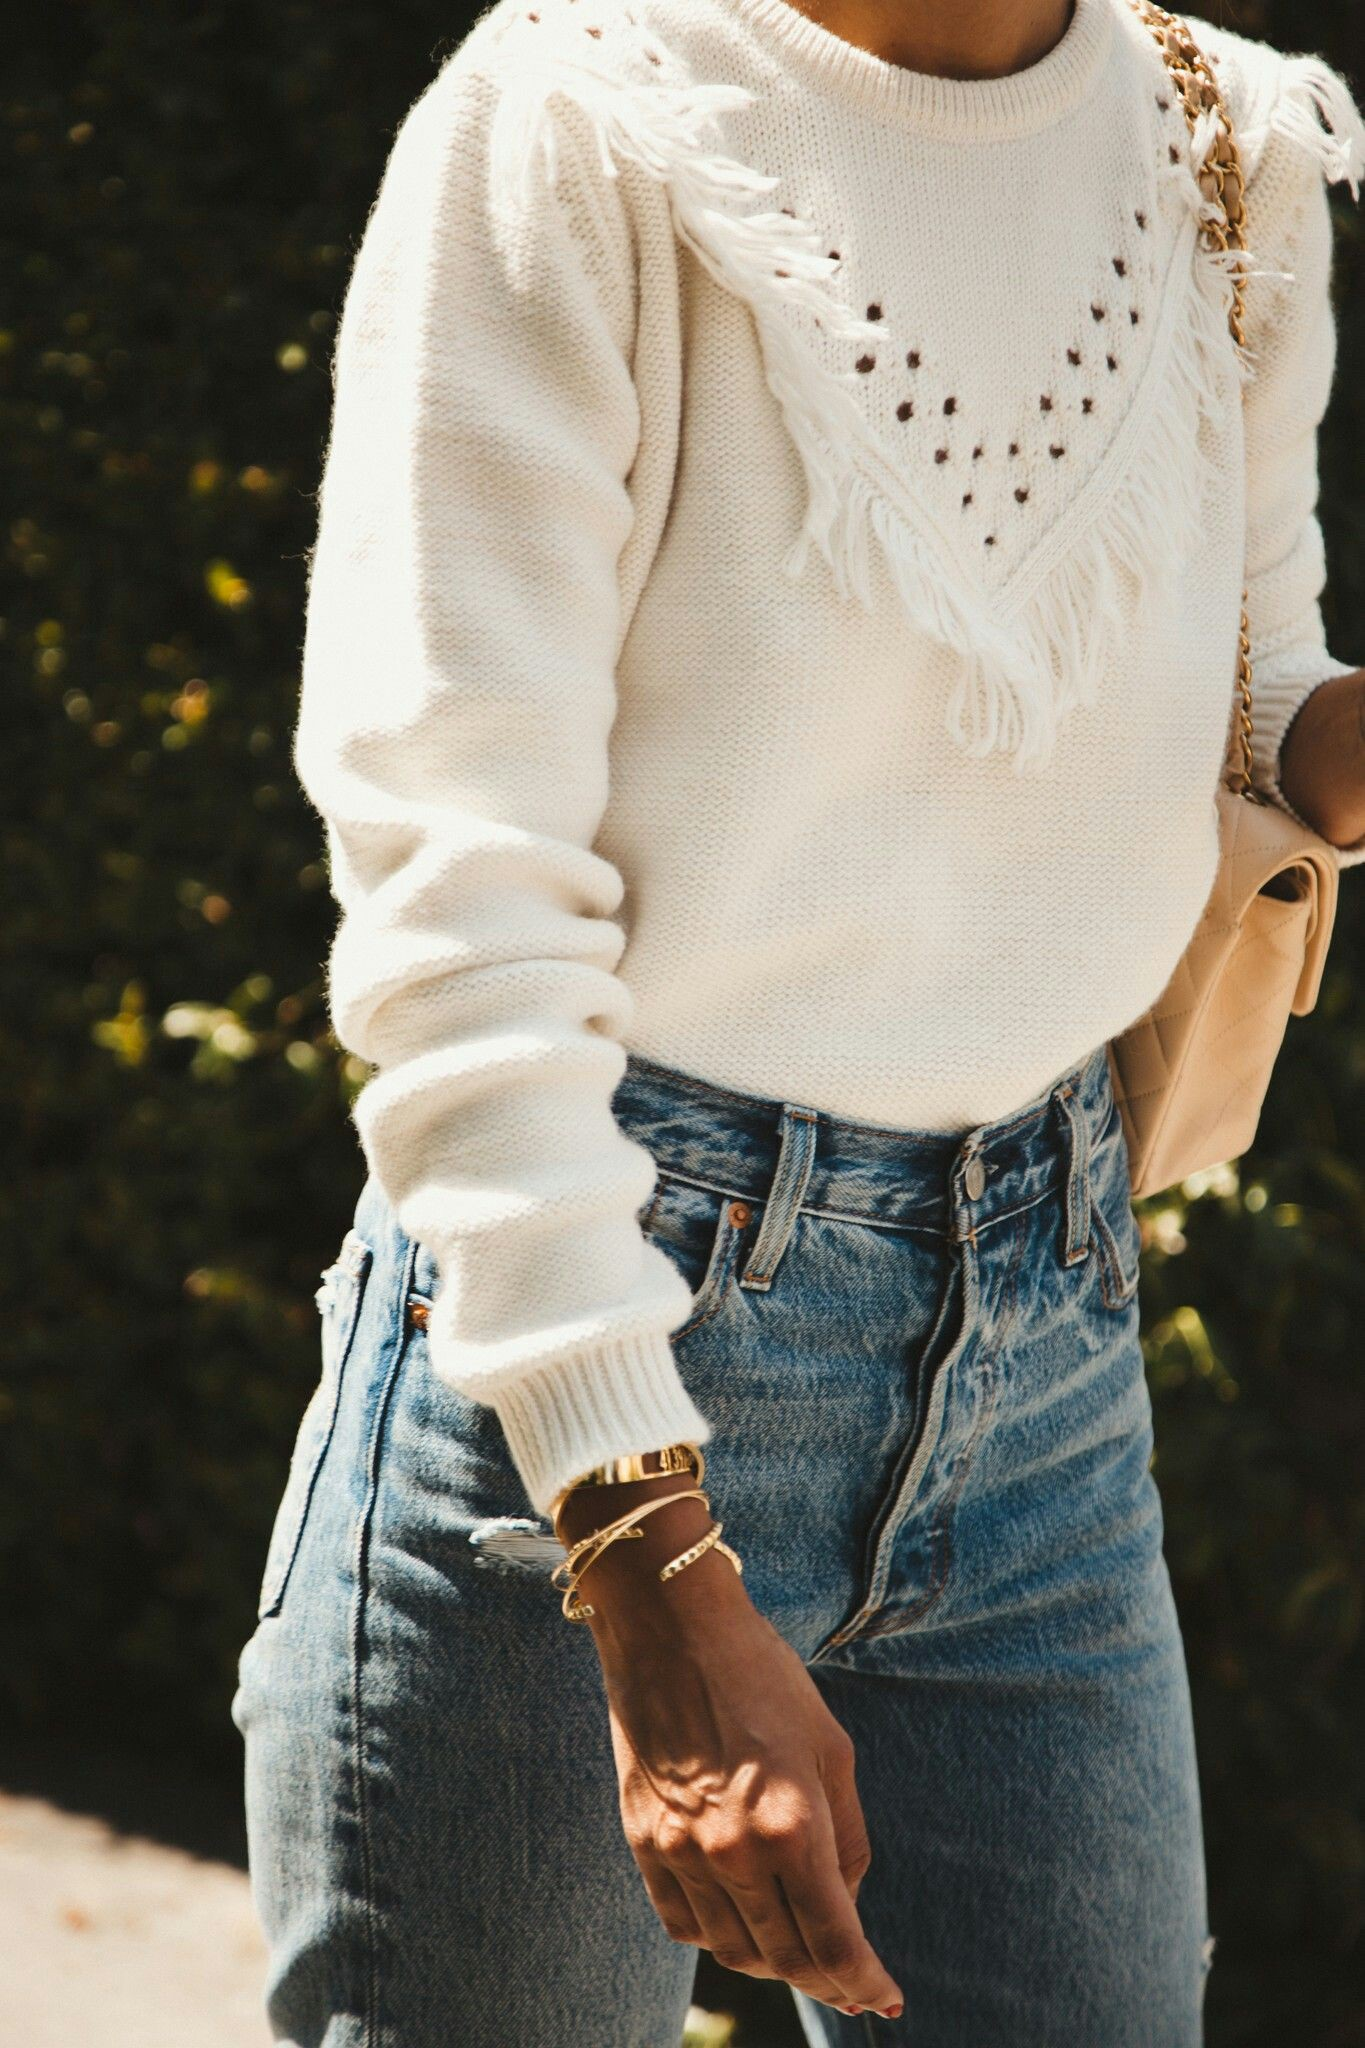 White colour outfit ideas 2020 with bohemian style, sweater, denim